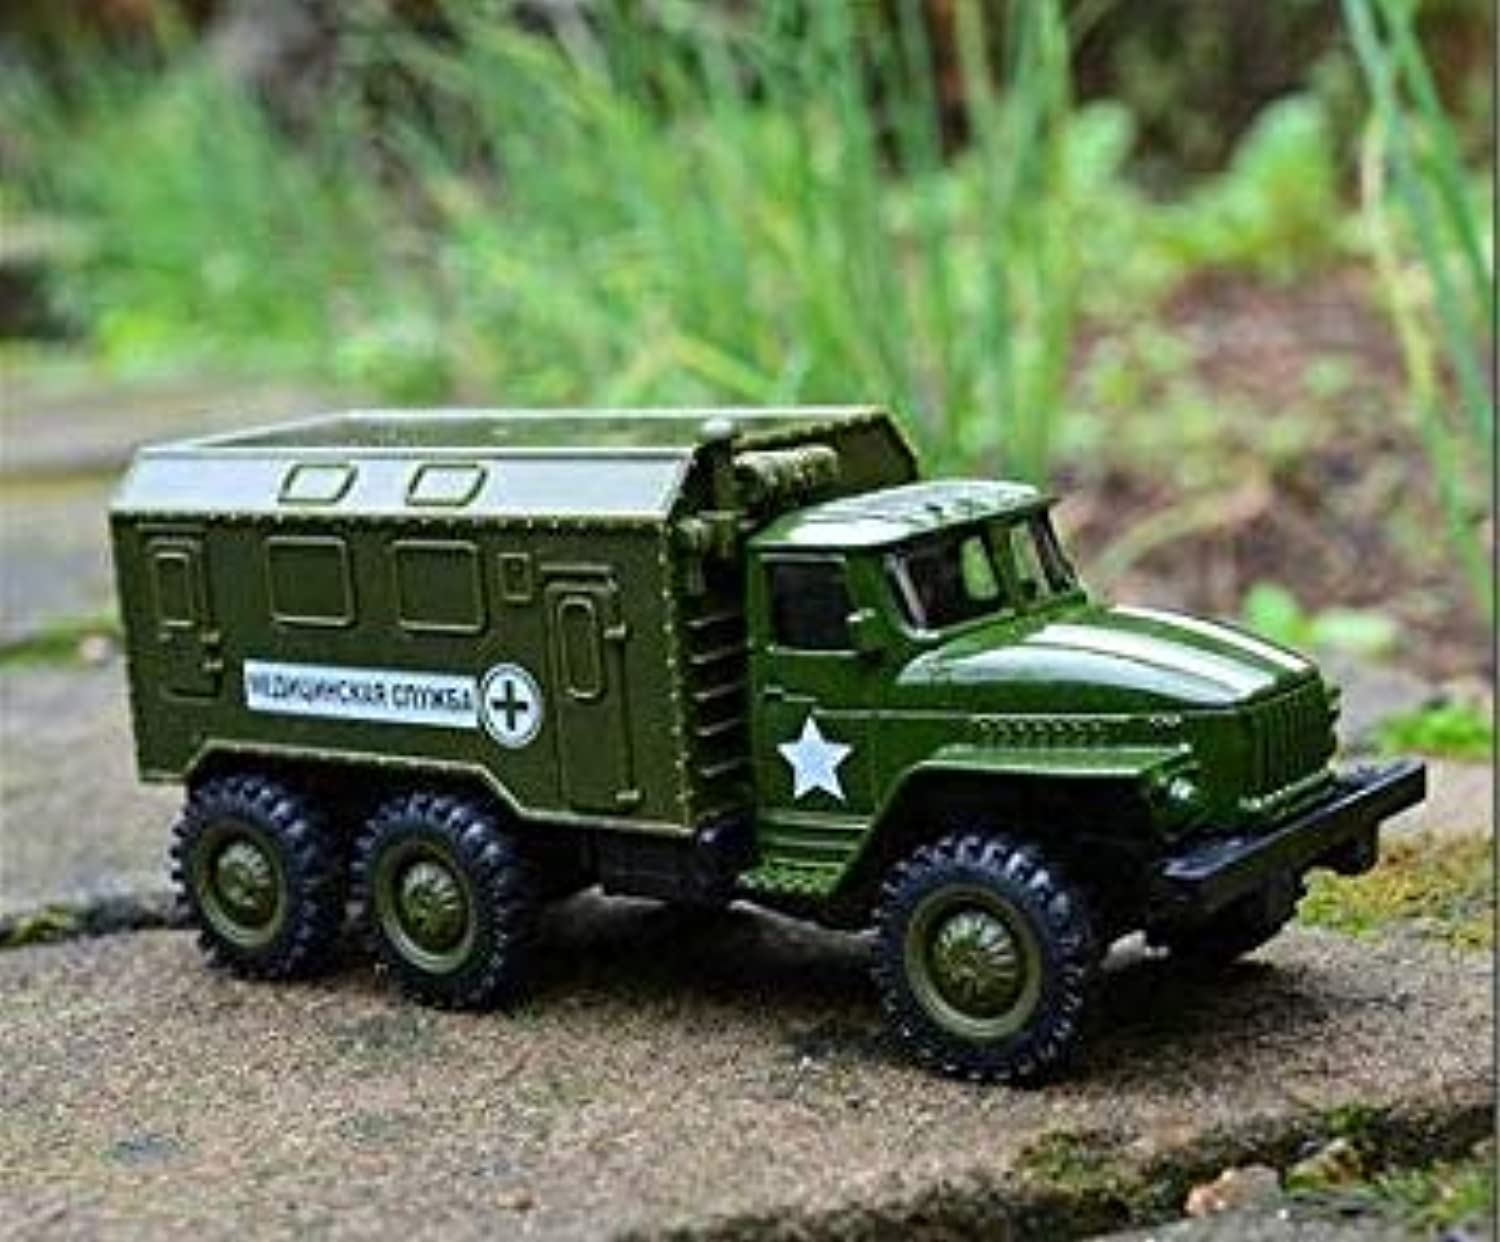 1 64 Alloy Pull Back Military Vehicle Model,high Simulation Military Truck Toy,Metal diecasts,Toy Vehicle, 5